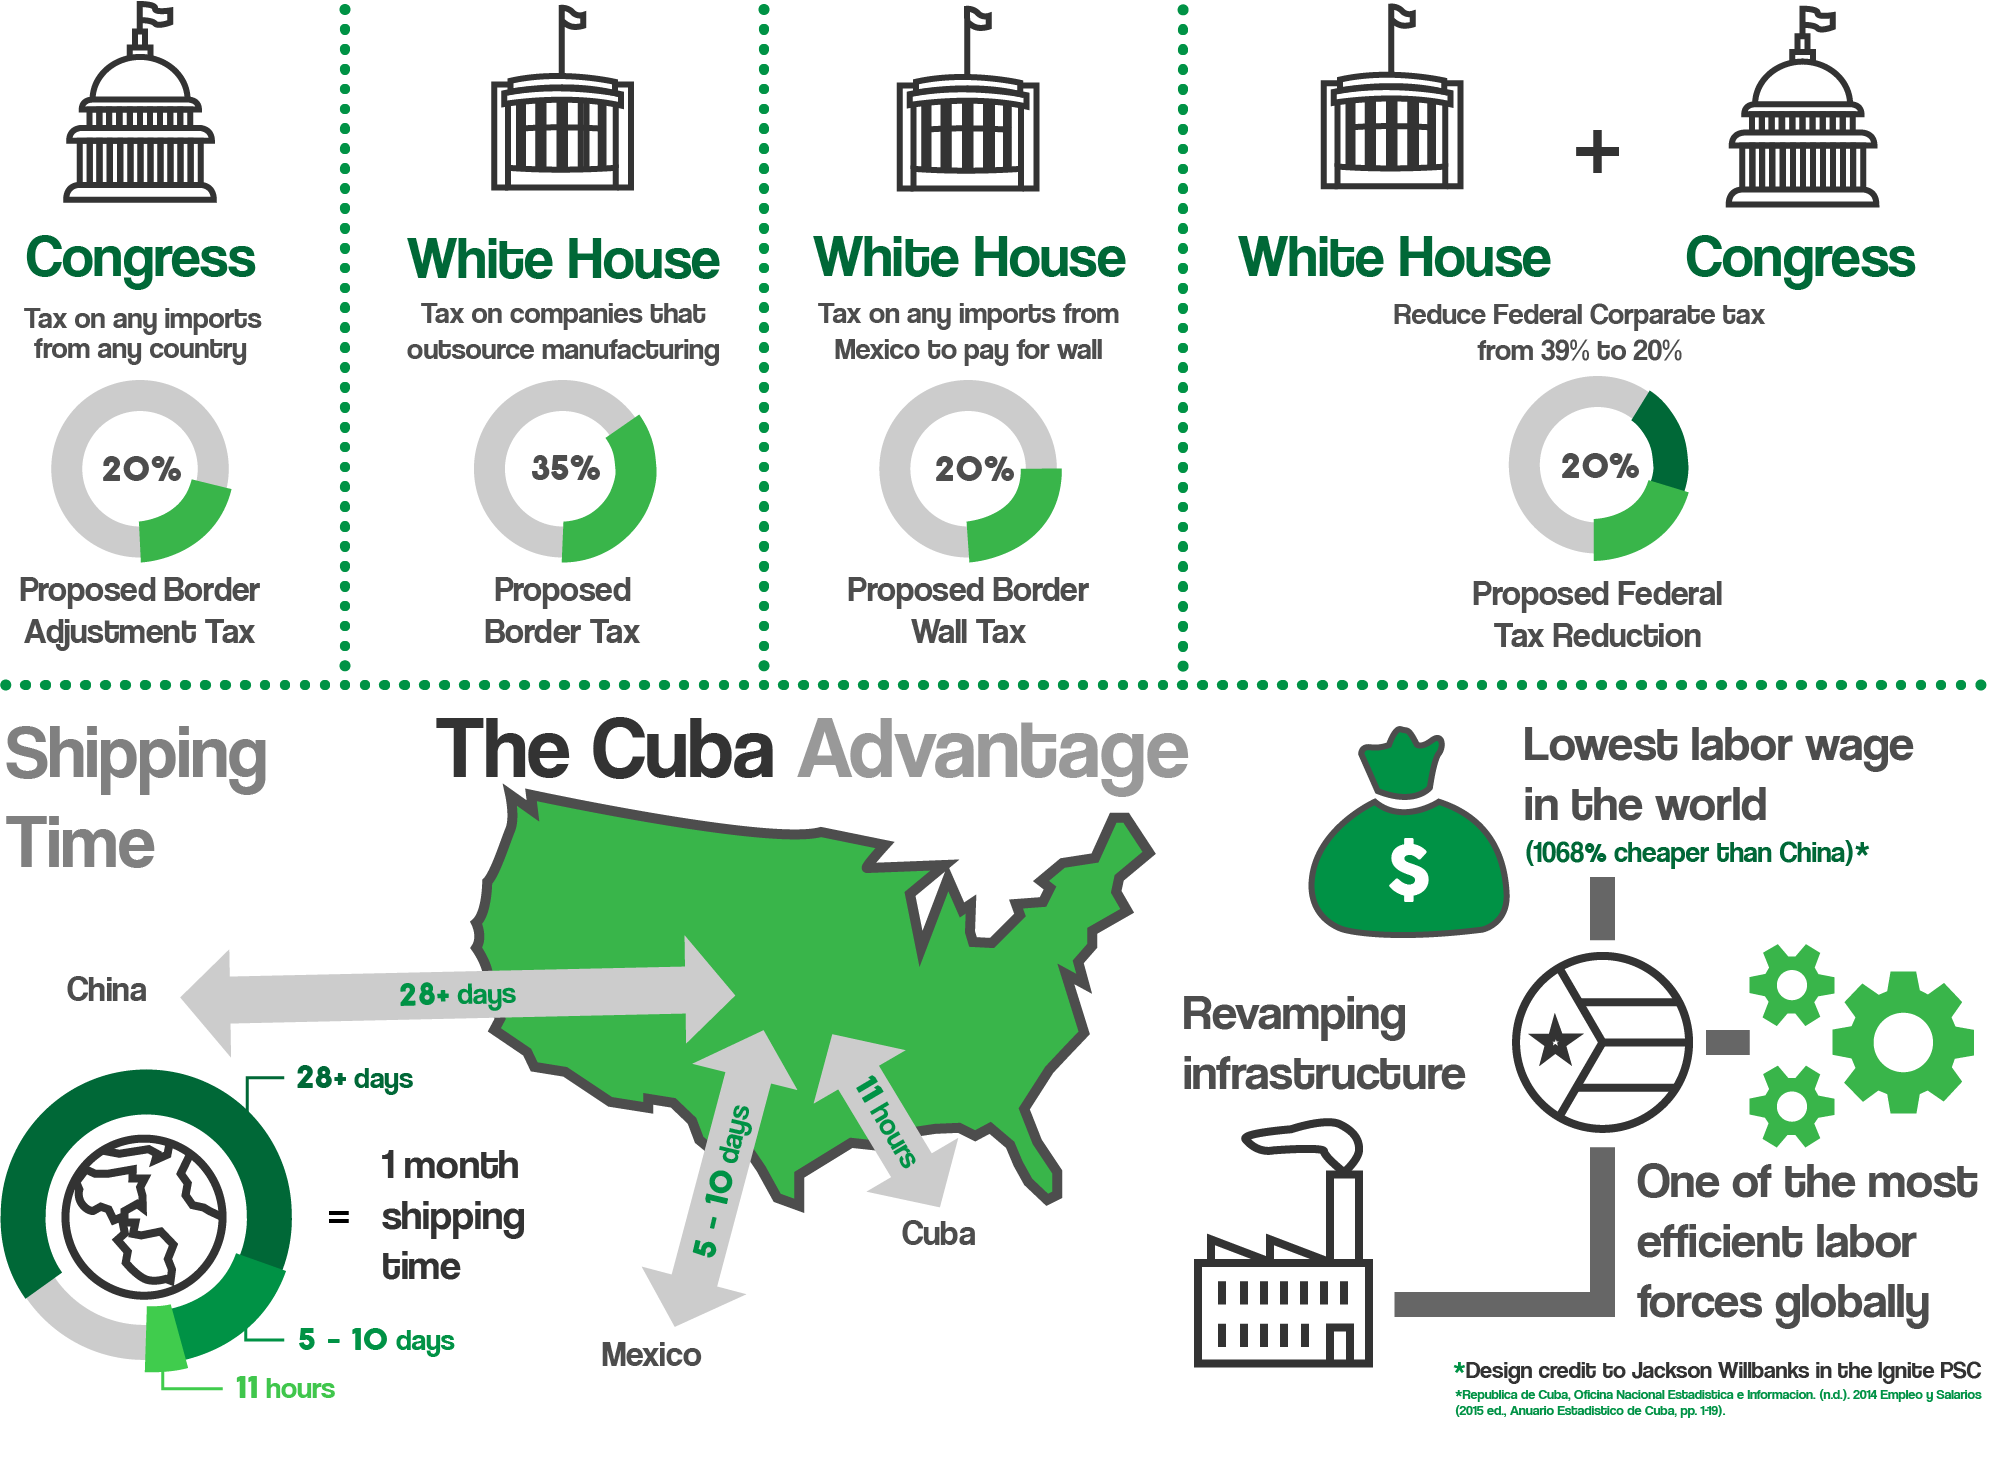 The Cuba Advantage Infographic